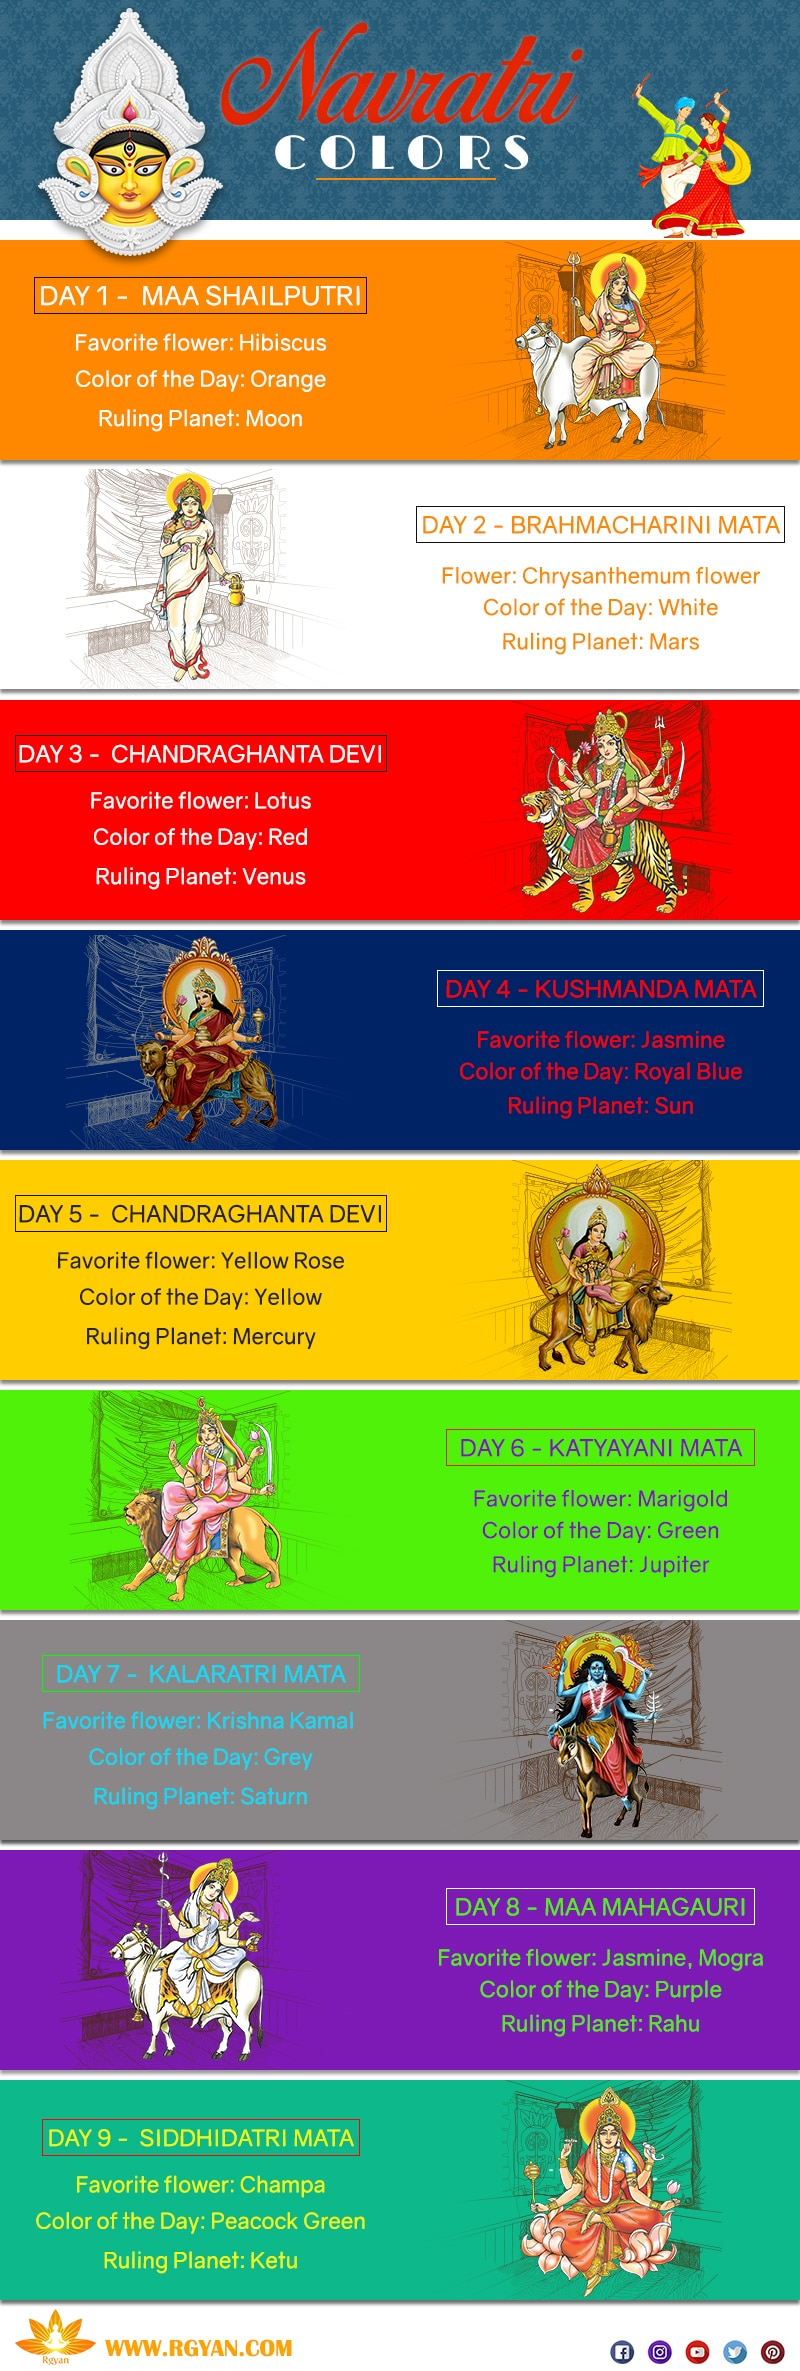 Navratri Colors